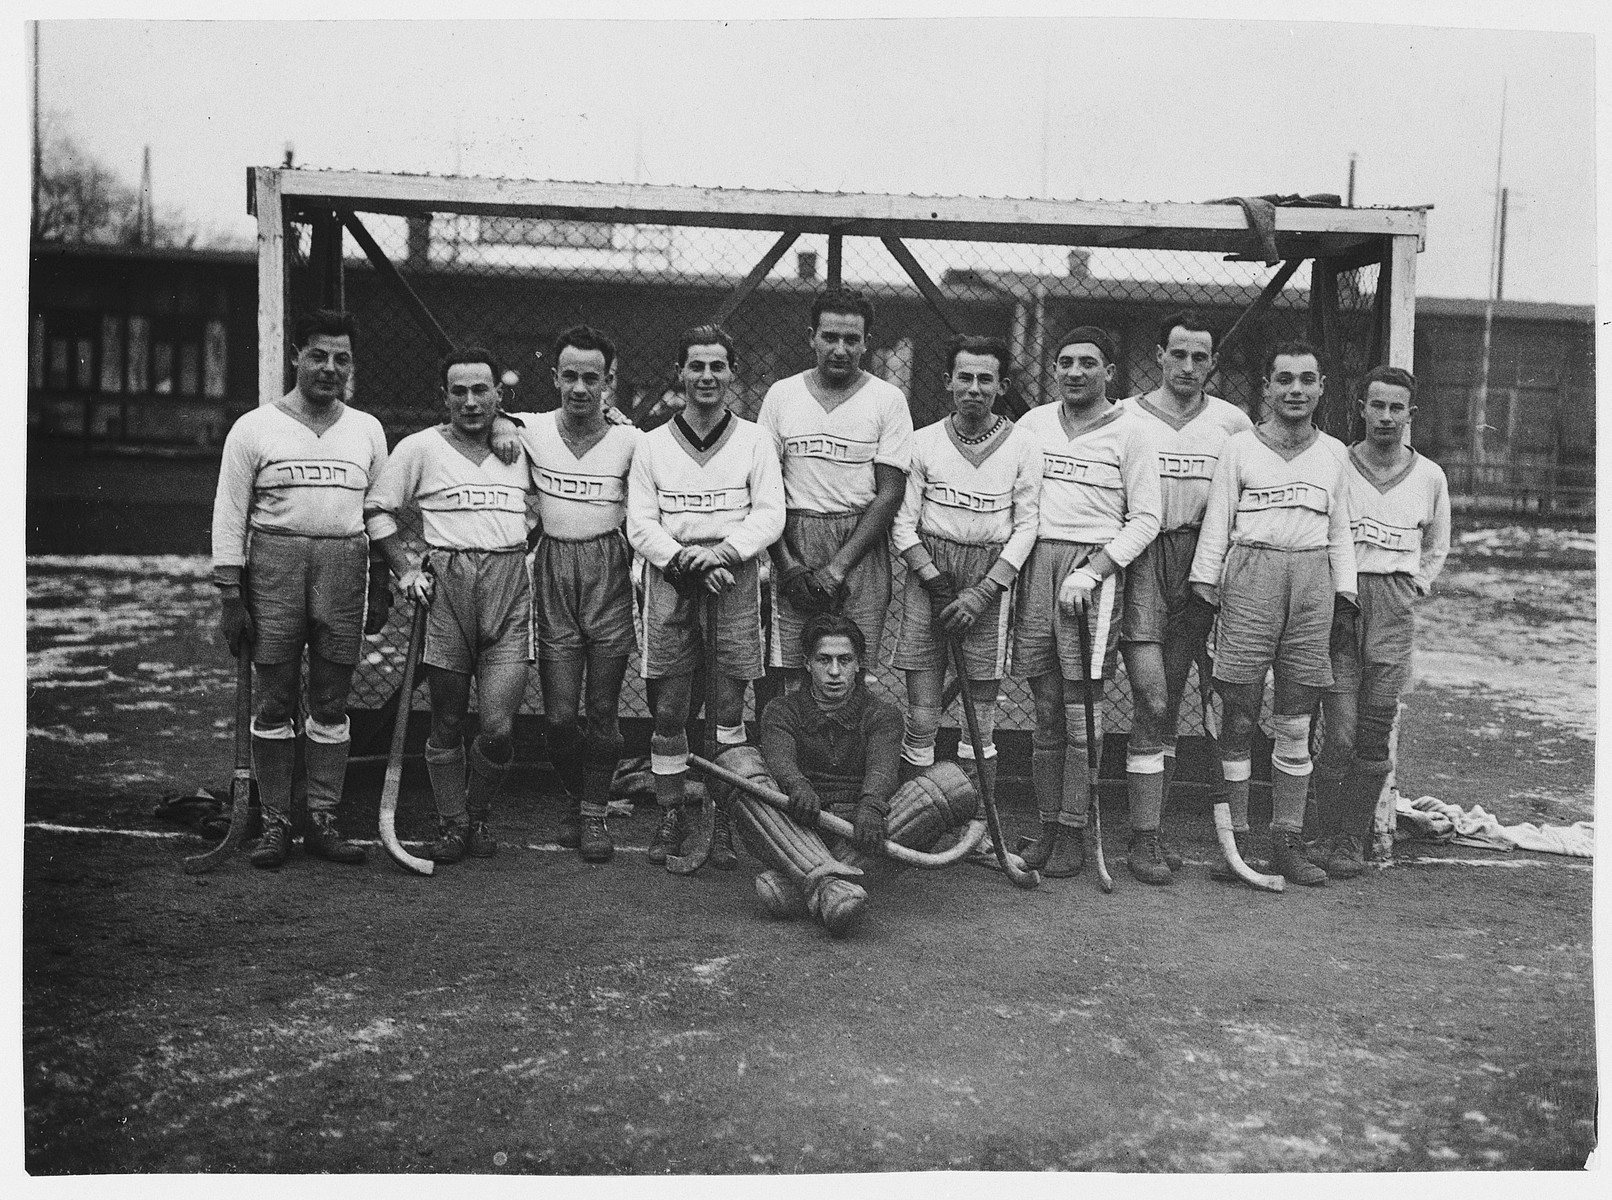 Members of Hagibor field hockey team.  Ota Margolius is pictured second from the right.